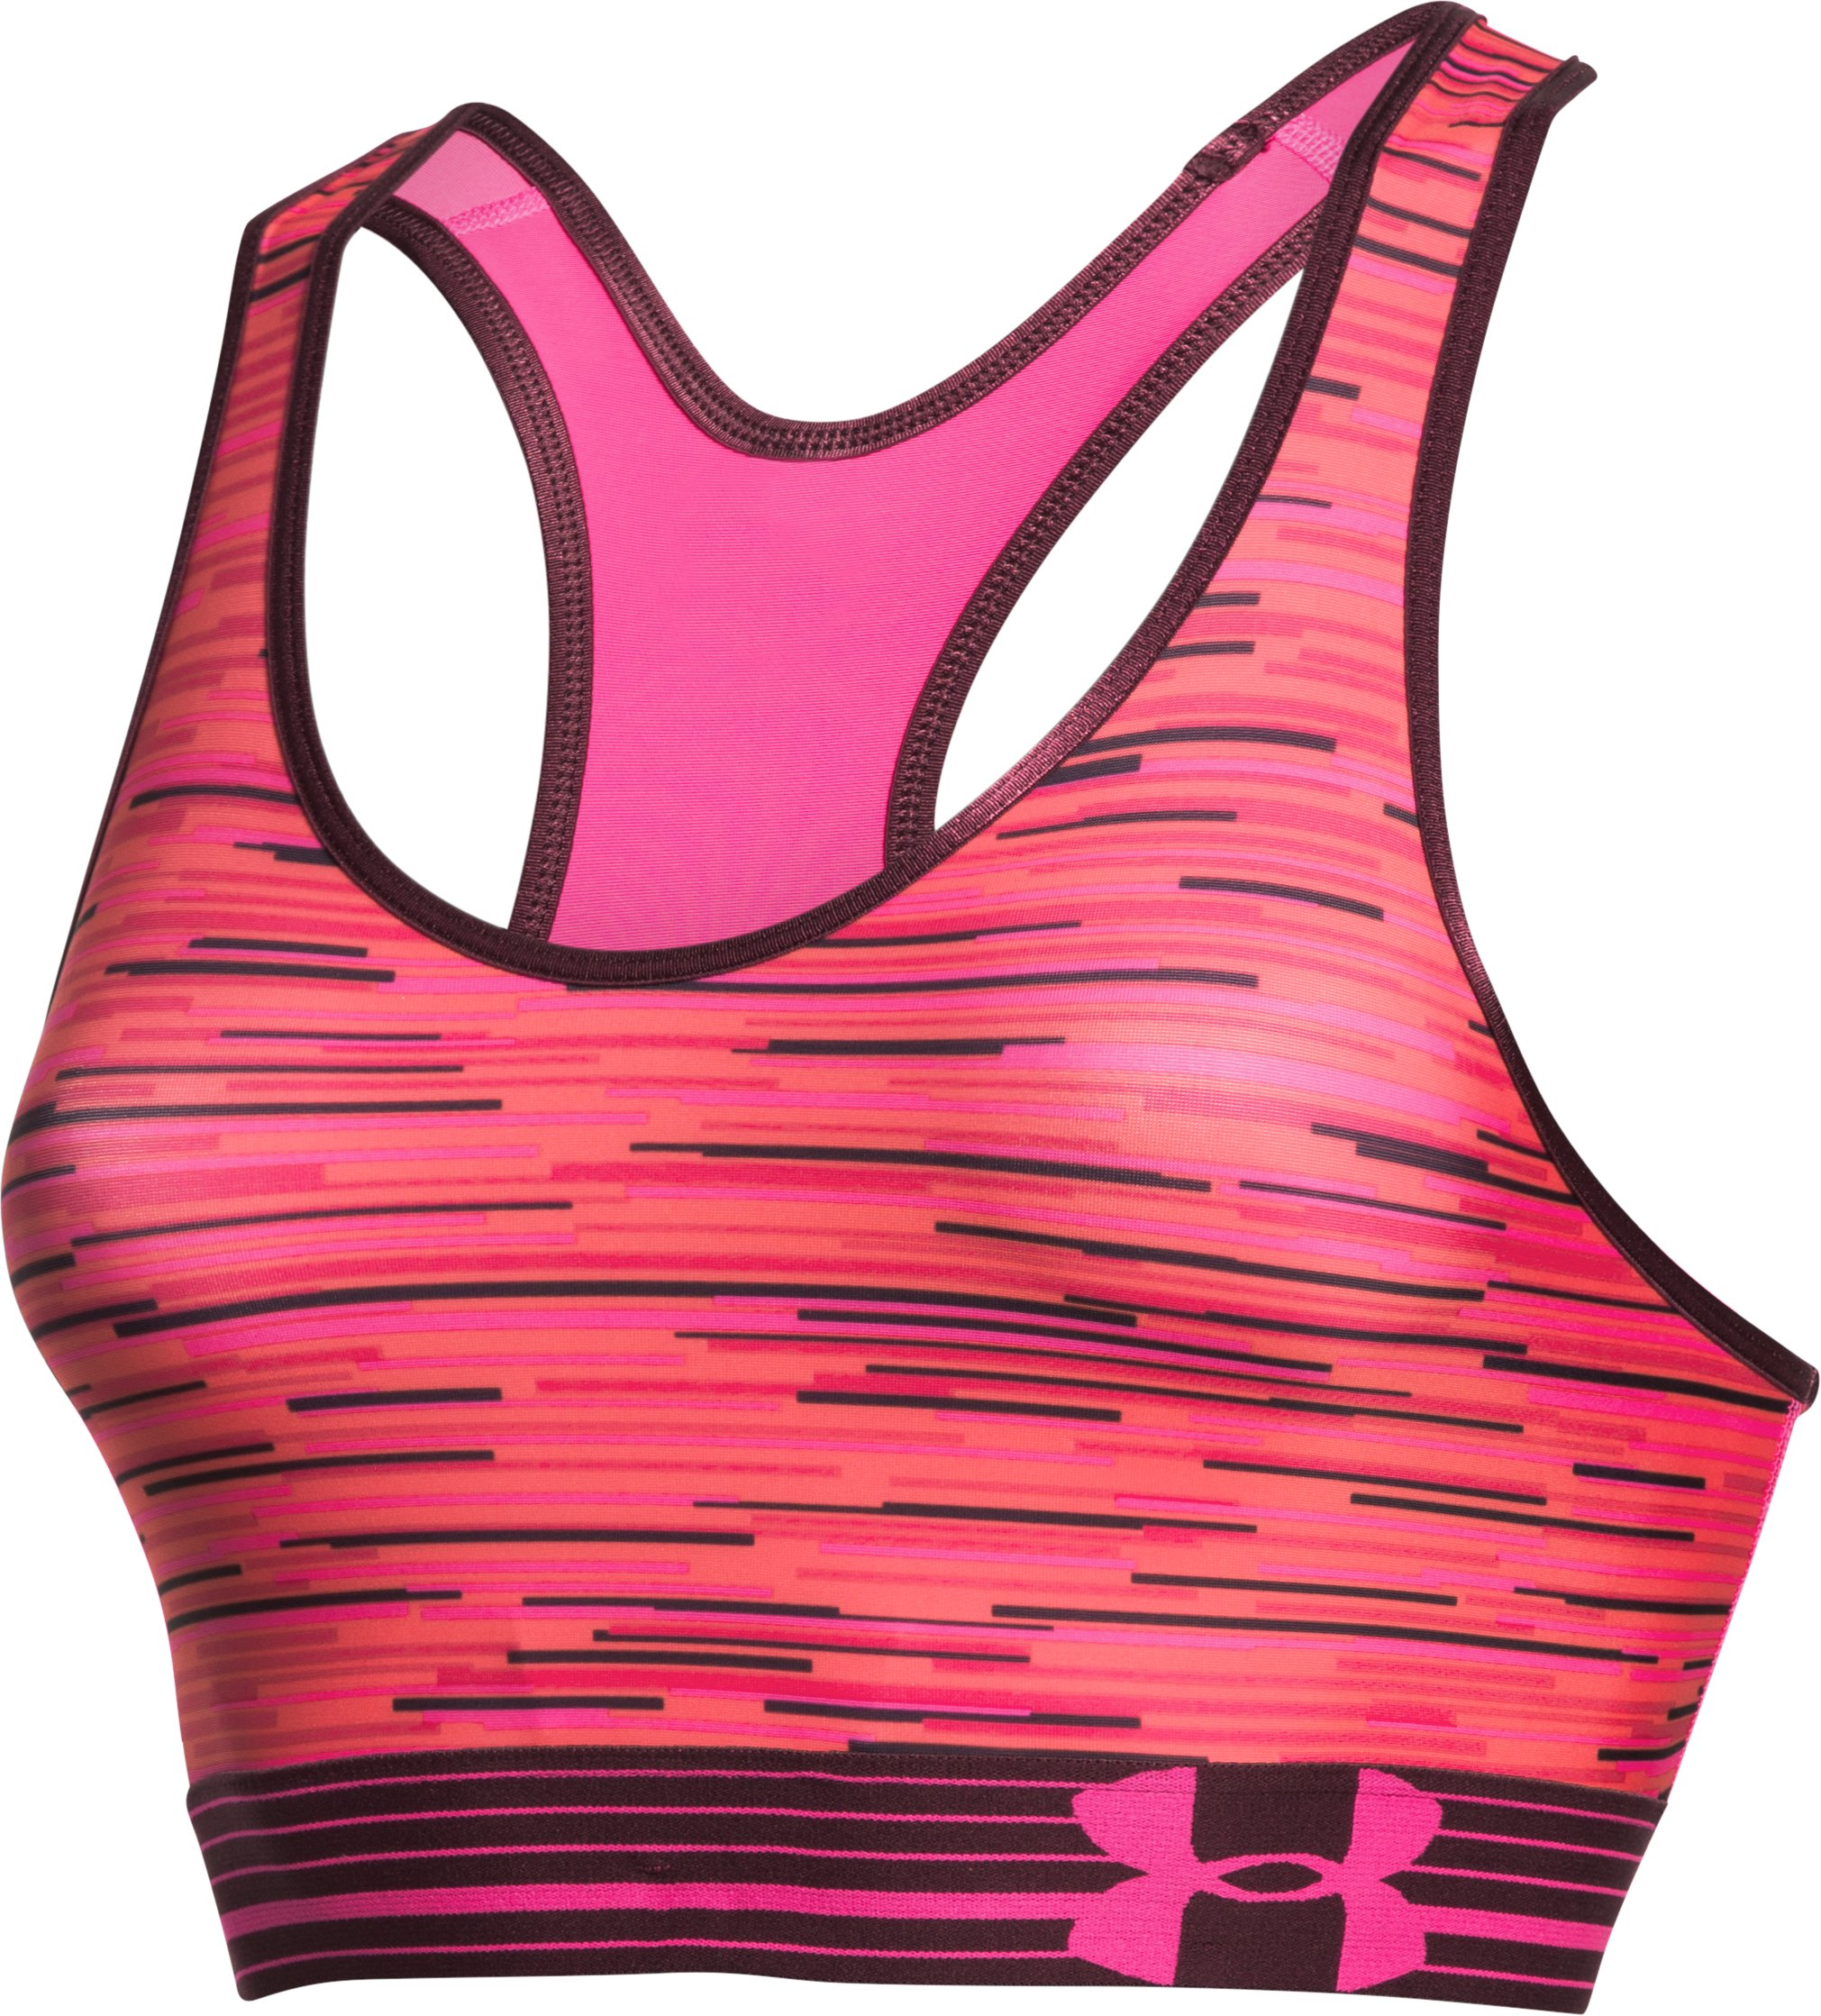 Women's Armour® Mid Printed Sports Bra, REBEL PINK, undefined